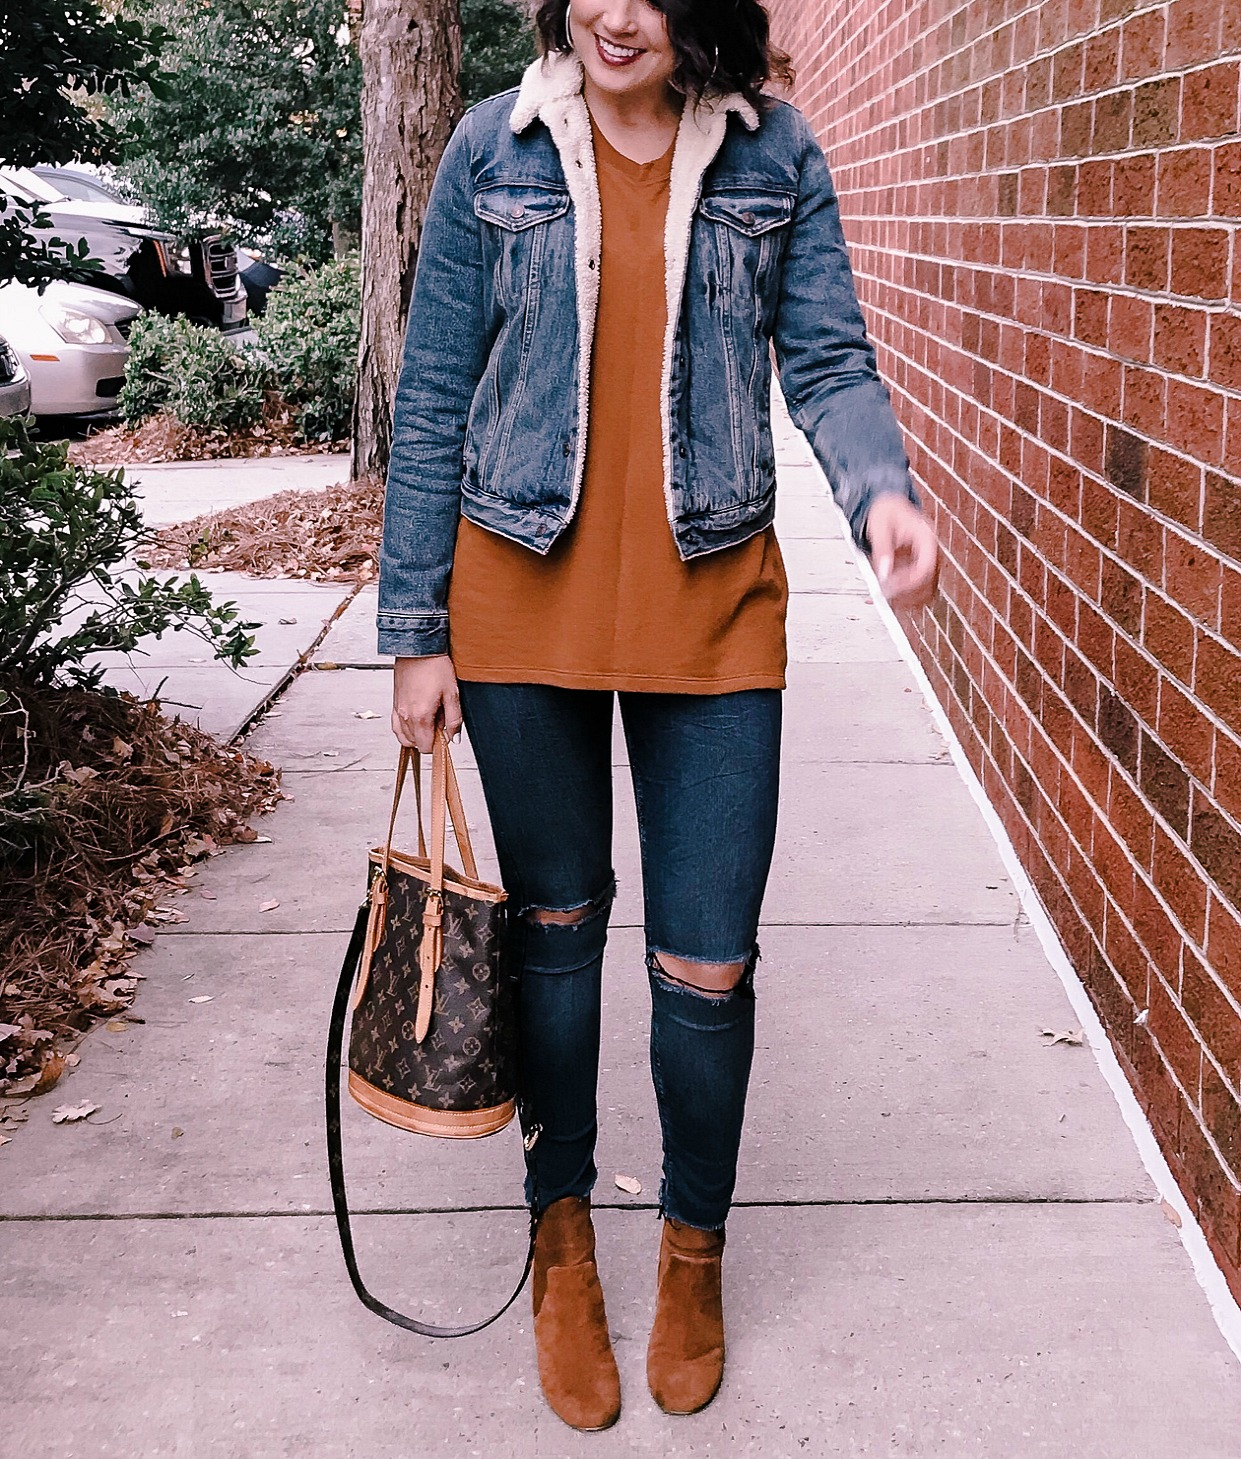 sherpa denim jacket, vintage louis vuitton, suede boots, life and messy hair, xo samantha brooke, messy hair, curly hair